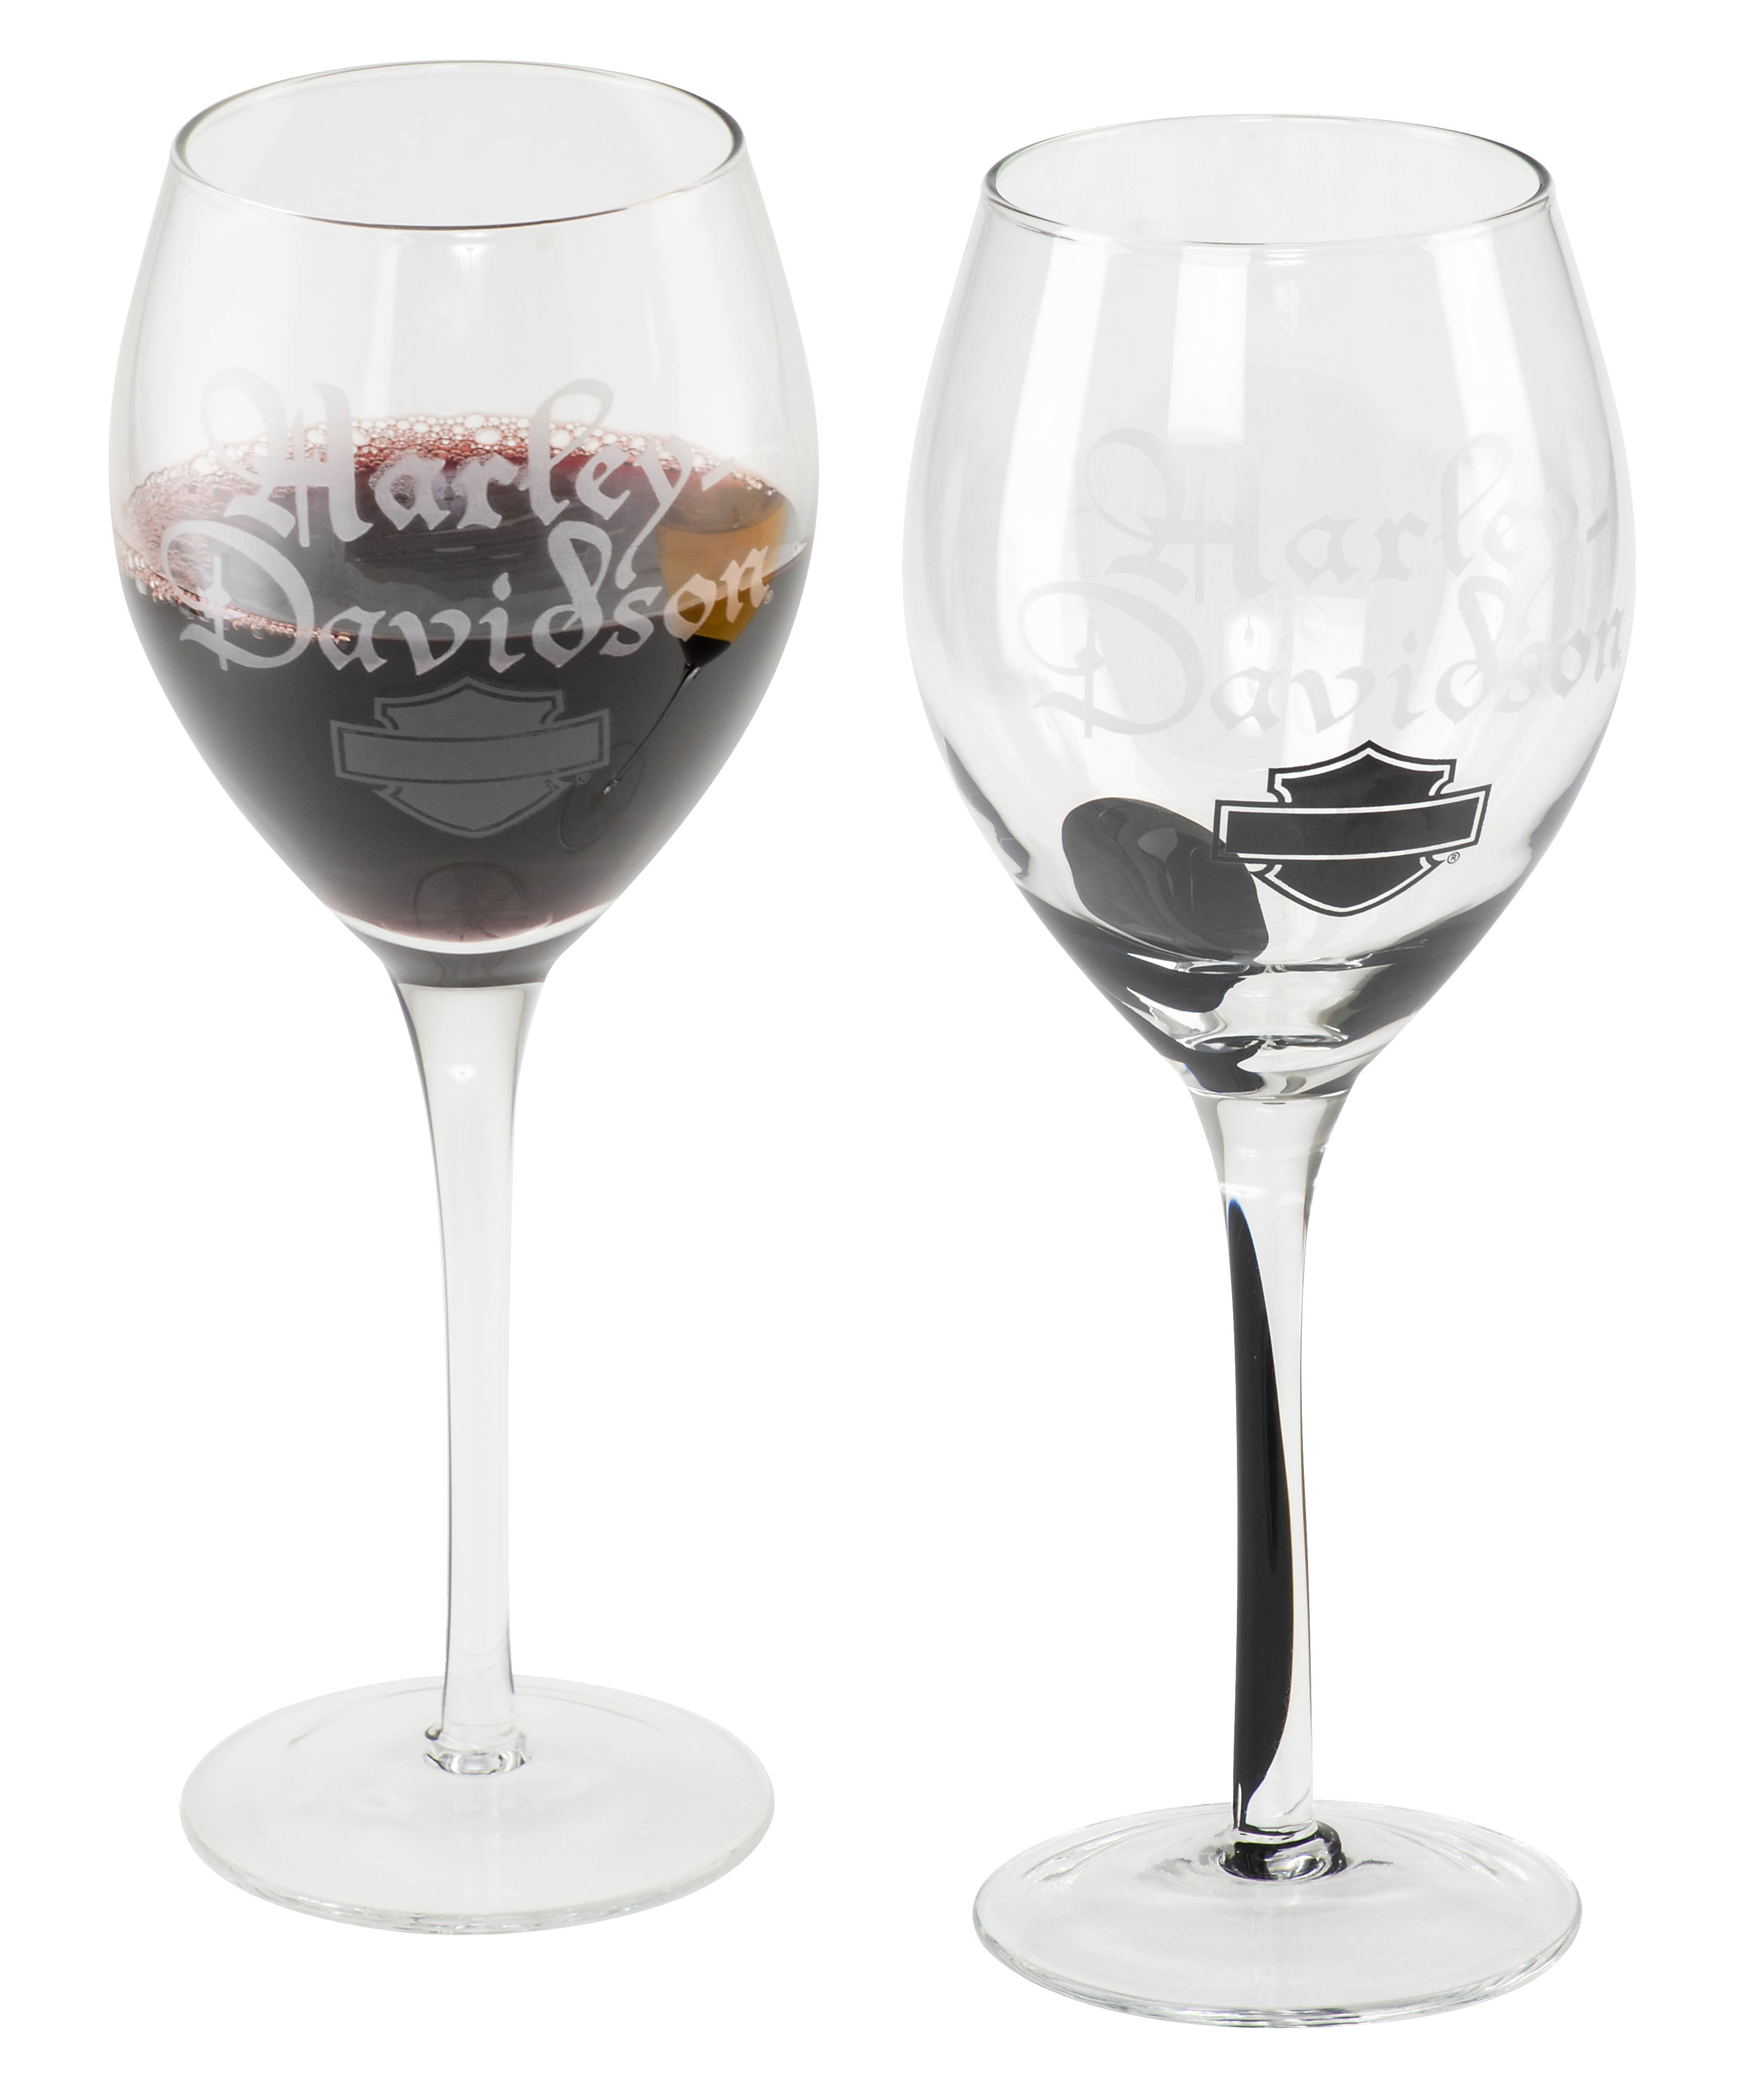 Harley-Davidson Silhouette B&S Wine Glass Set HDL-18767